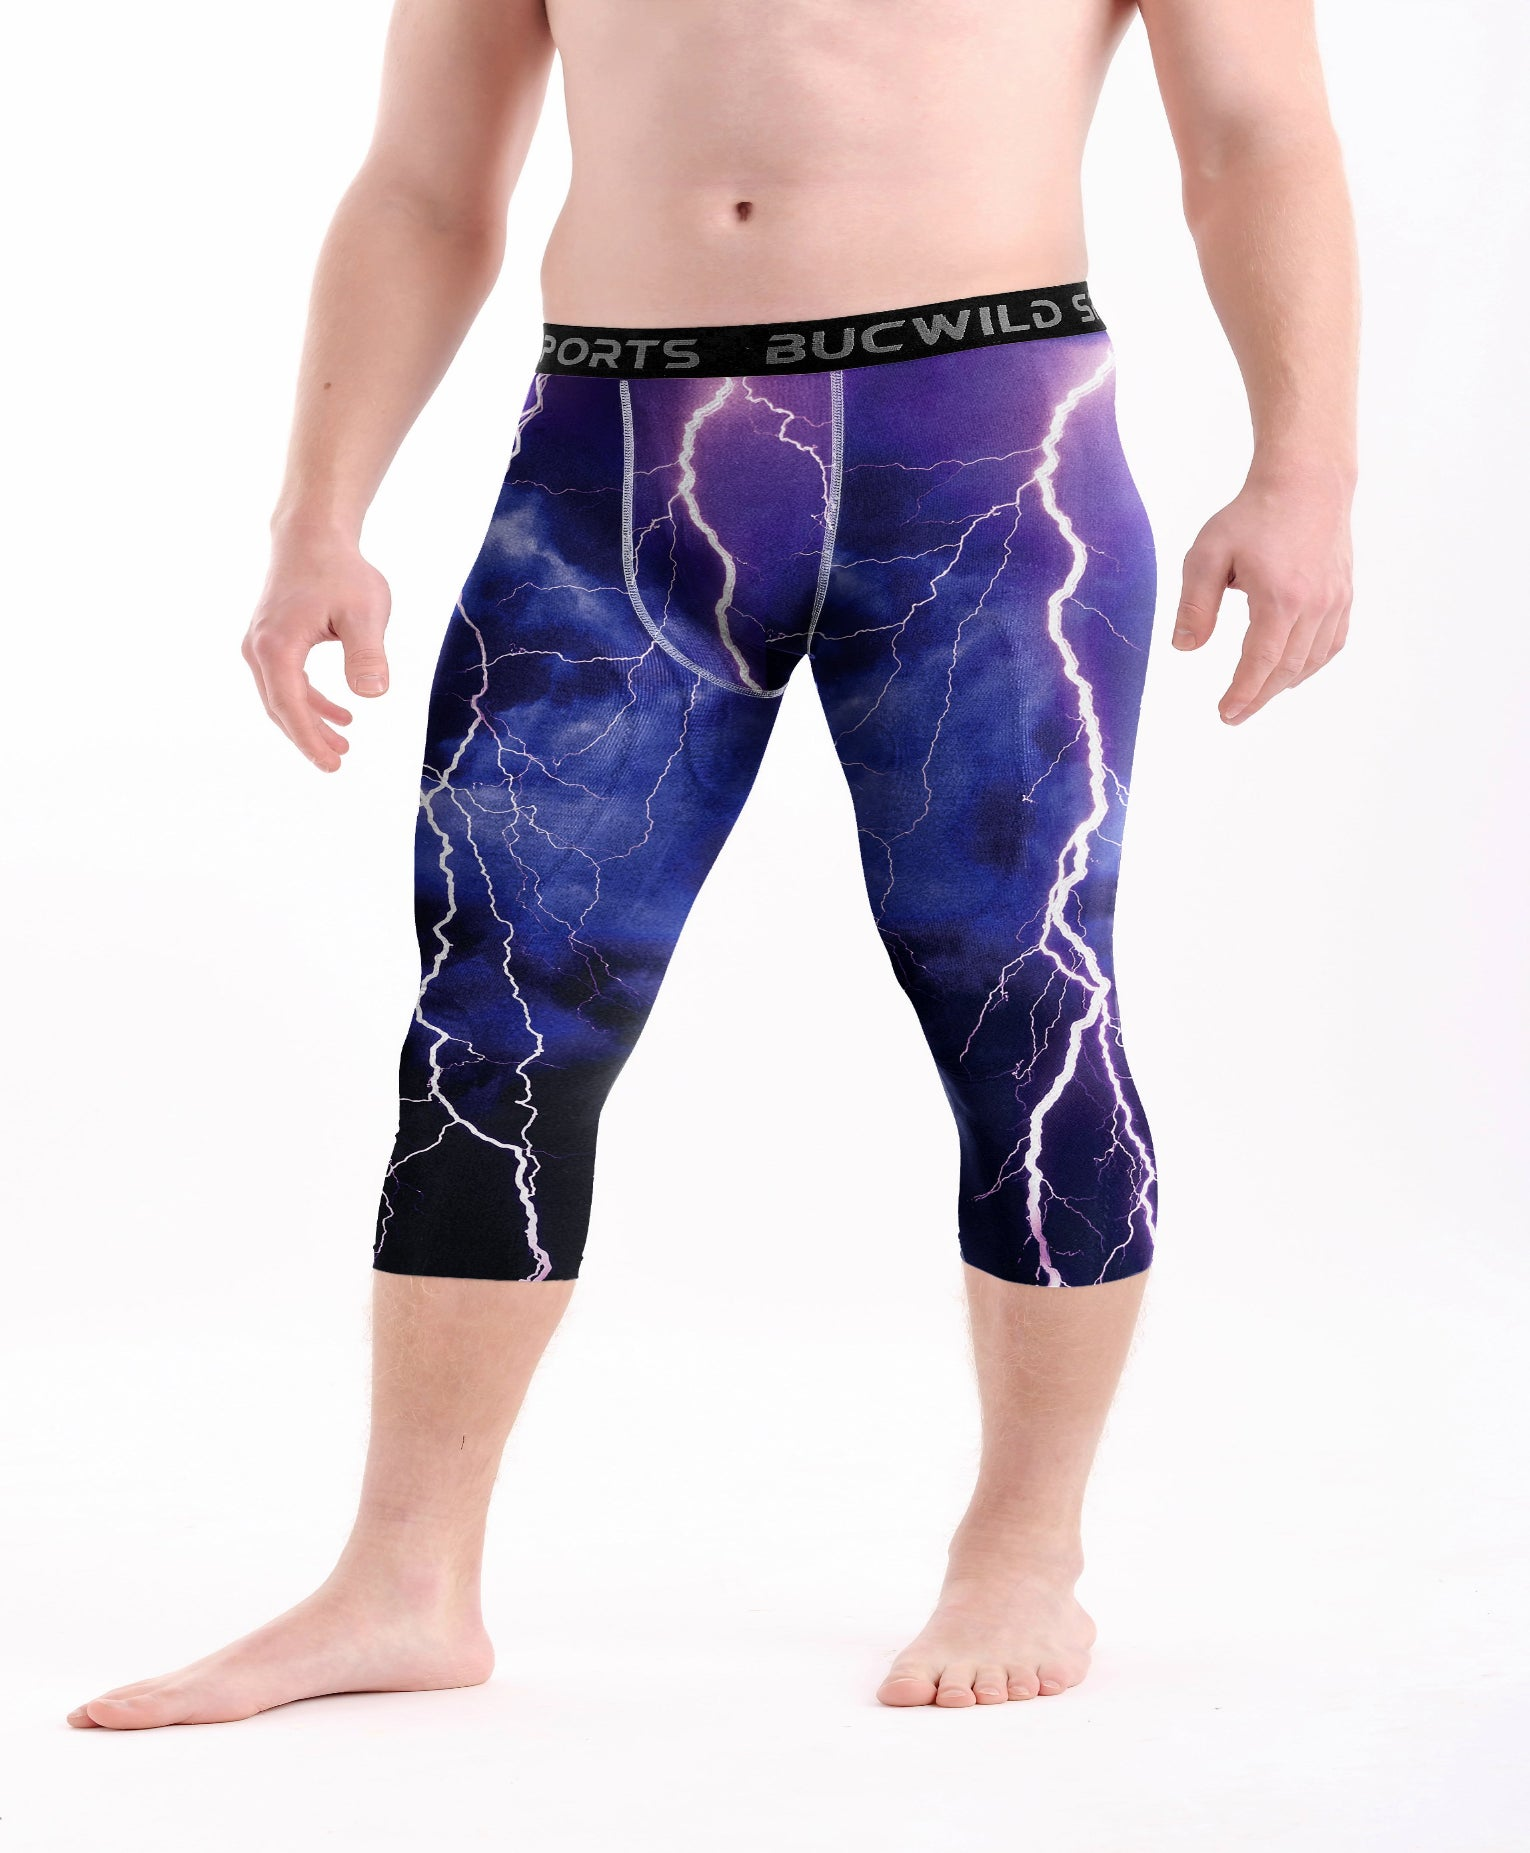 3/4 Compression Pants/Tights - Blue Purple Lightning